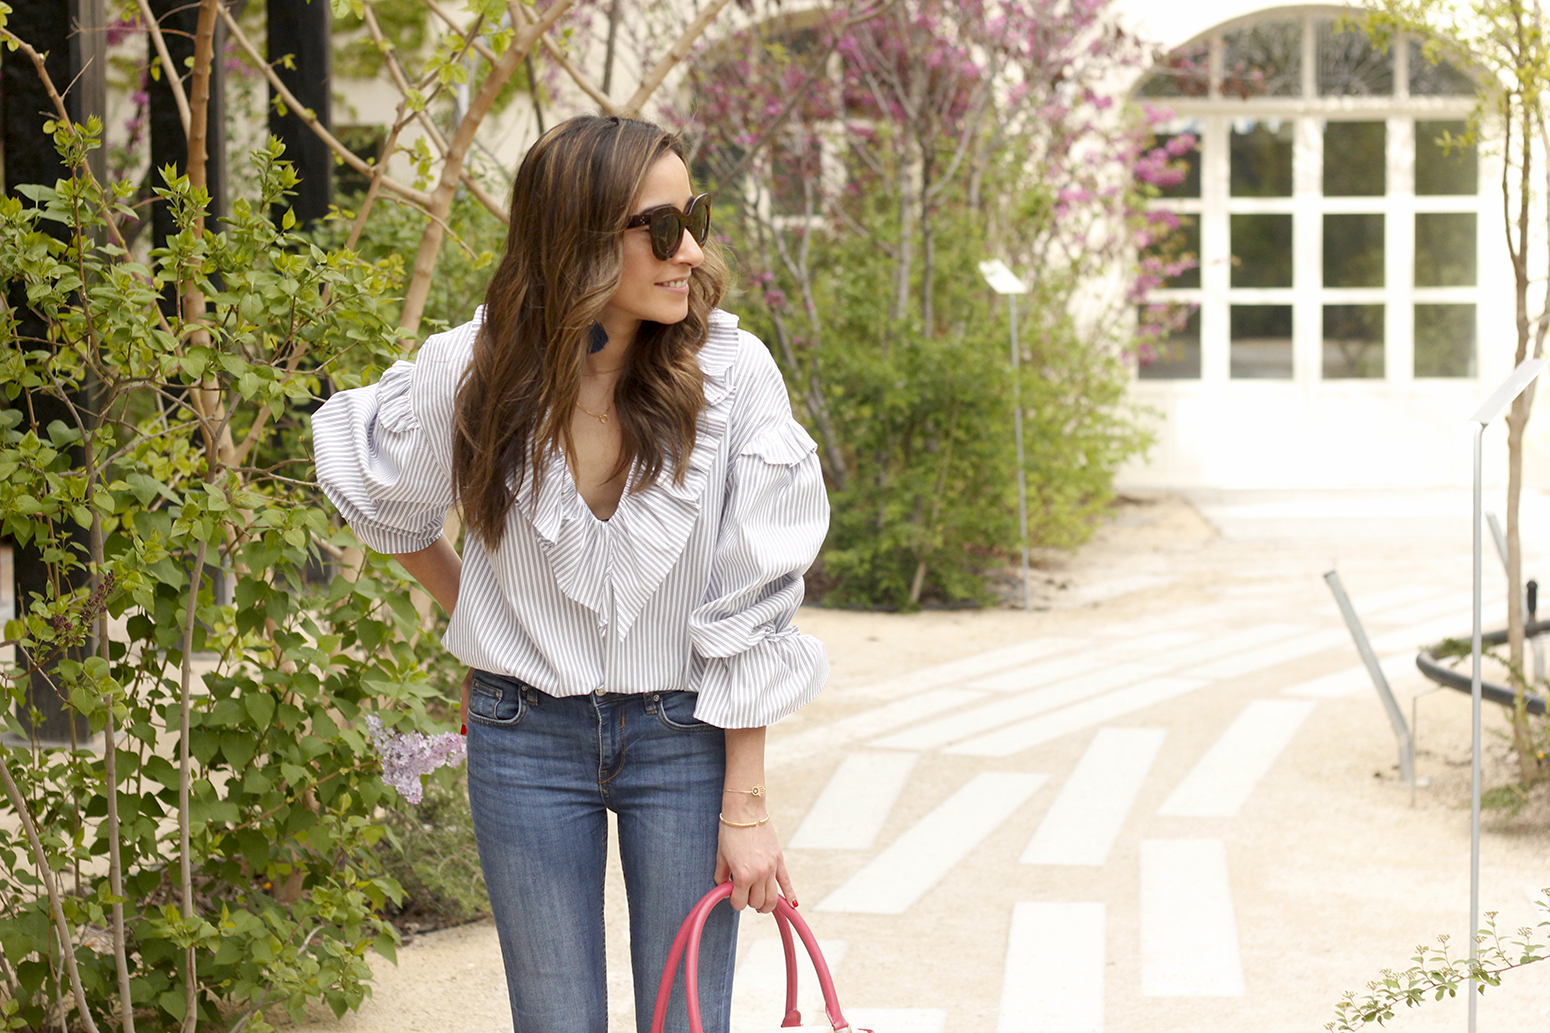 Ruffled striped shirt jeans céline sunnies sandals pamapamar bag accessories spring outfit style fashion11